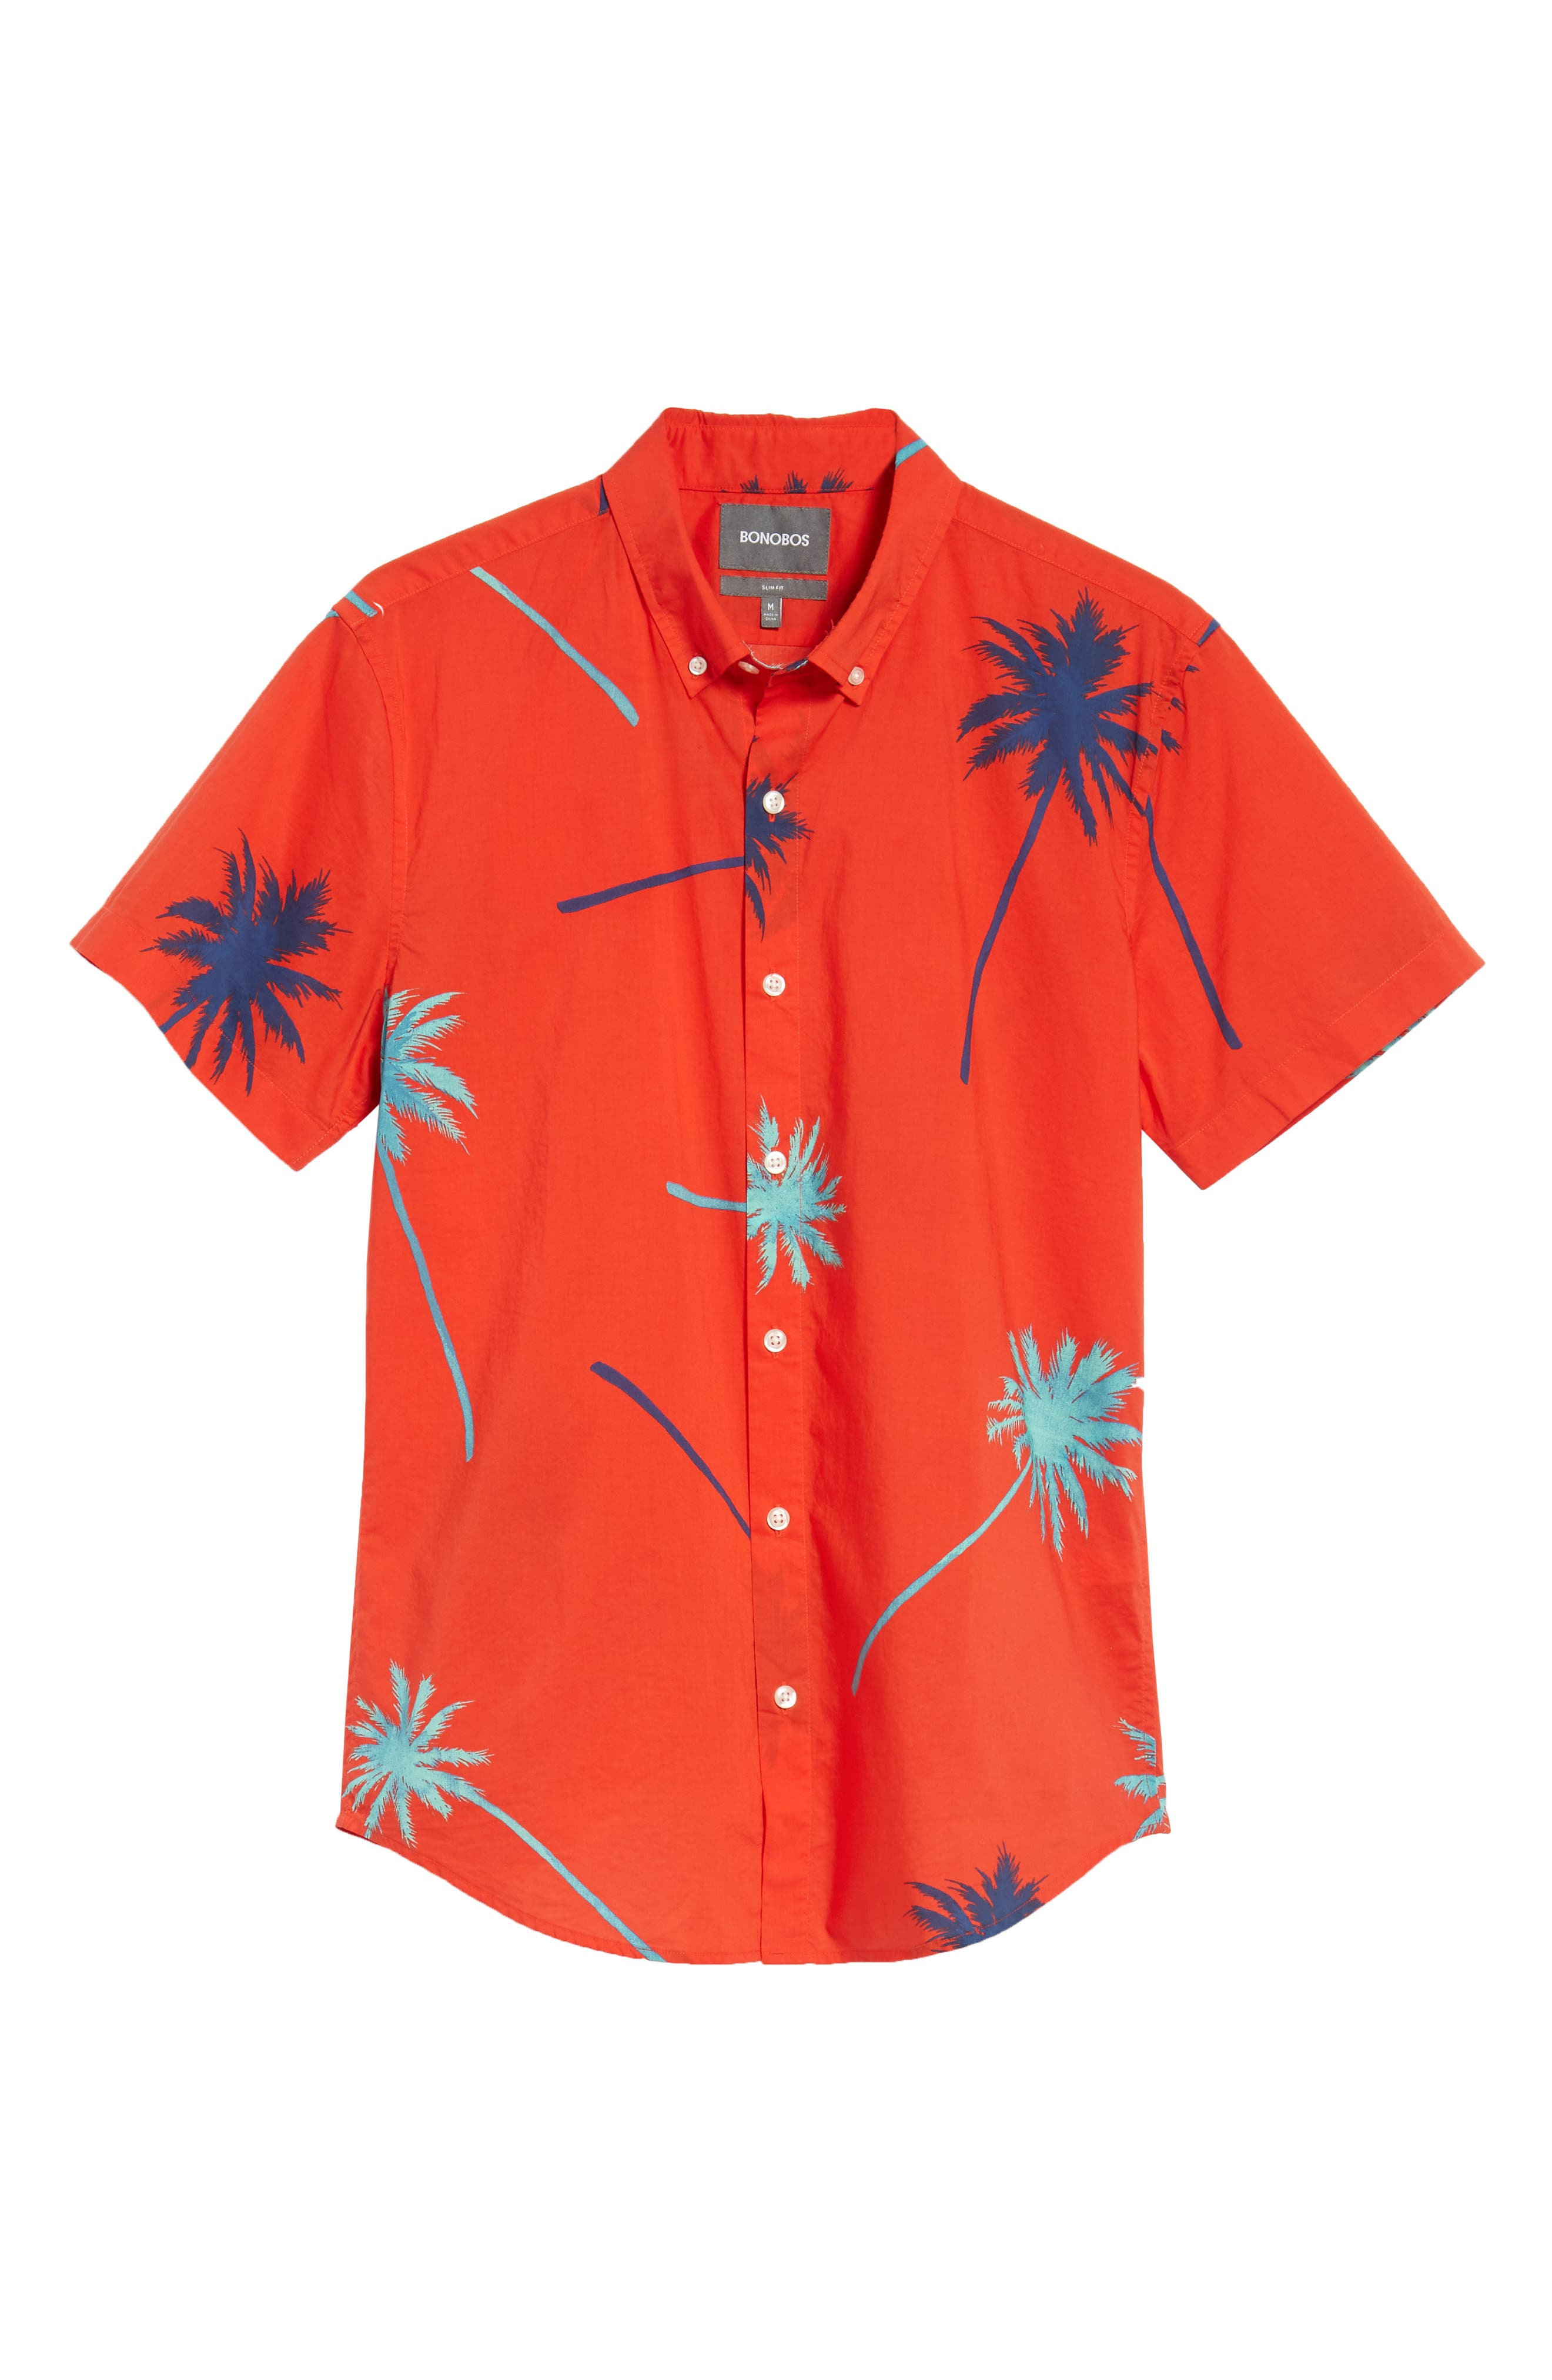 Riviera Slim Fit Palm Print Sport Shirt,                             Alternate thumbnail 6, color,                             Palm Tree View - Goji Berry